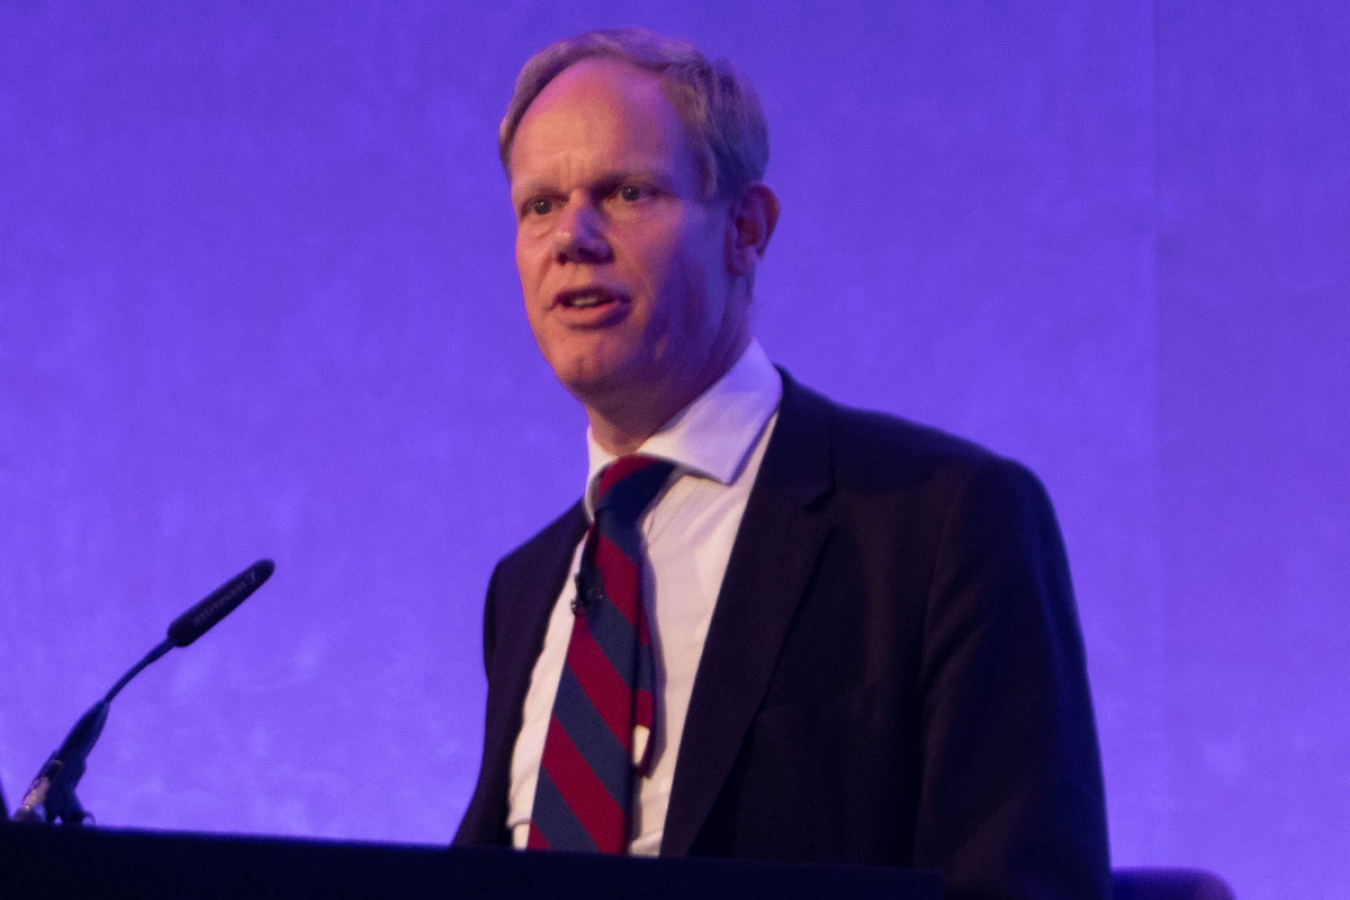 The Home Office's permanent secretary, Matthew Rycroft